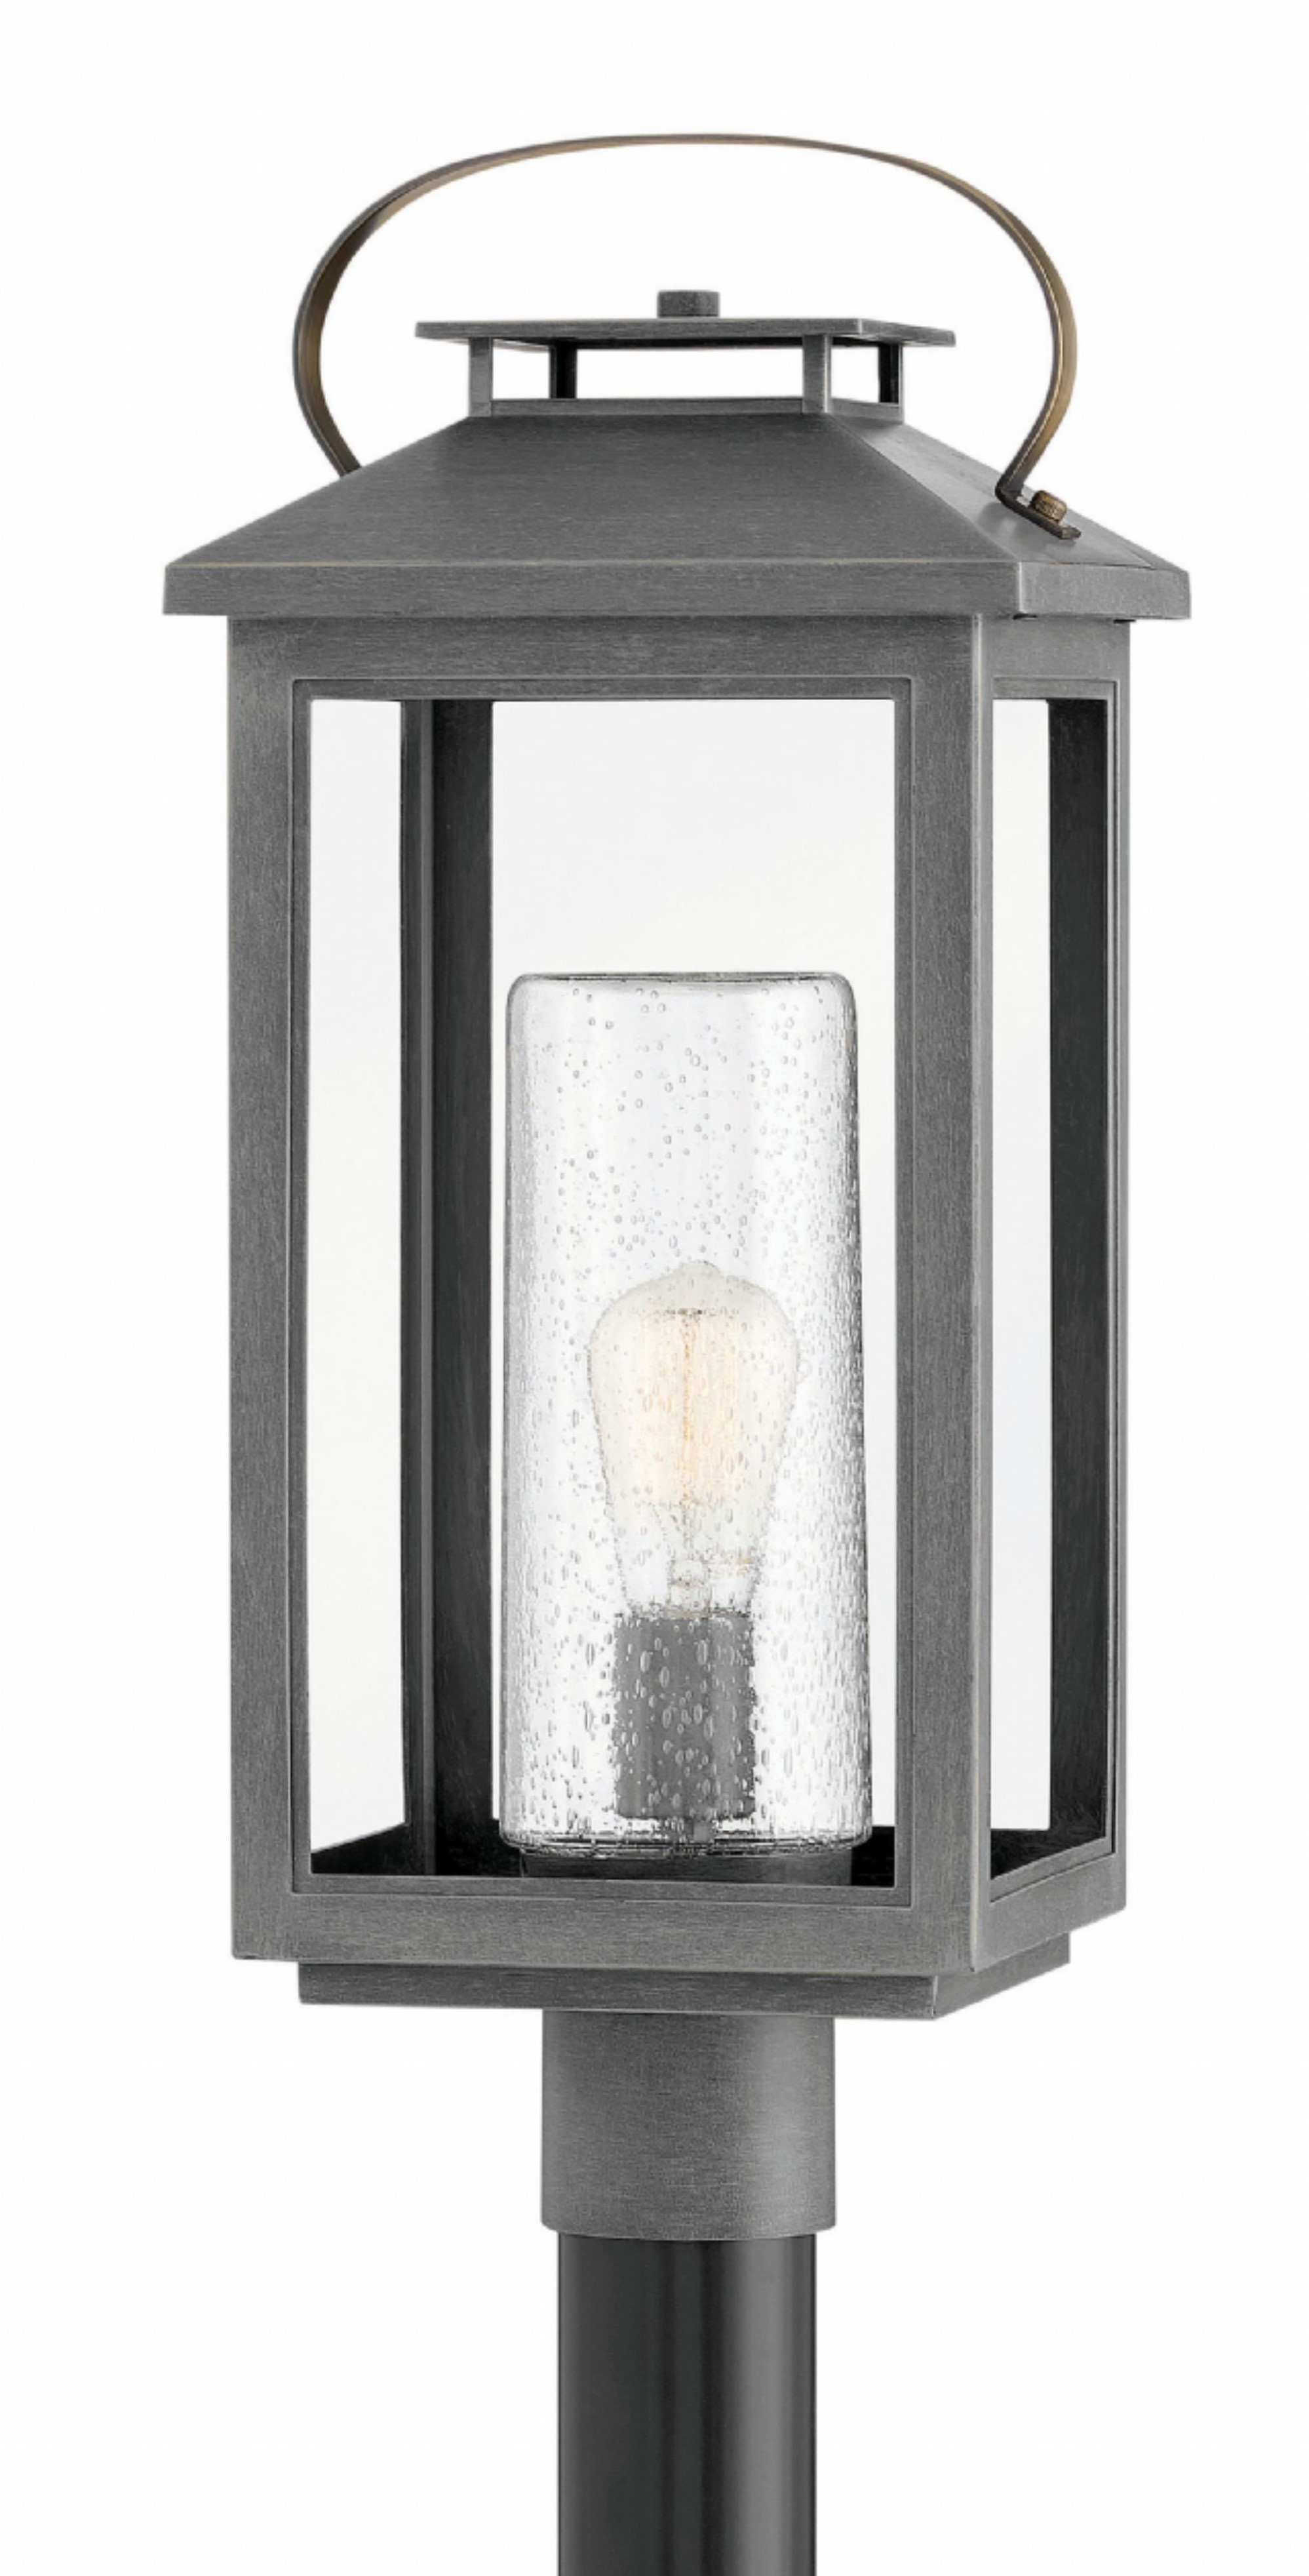 Hinkley 1161AH Atwater Outdoor Post Light in the Ash Bronze finish with Seedy Glass